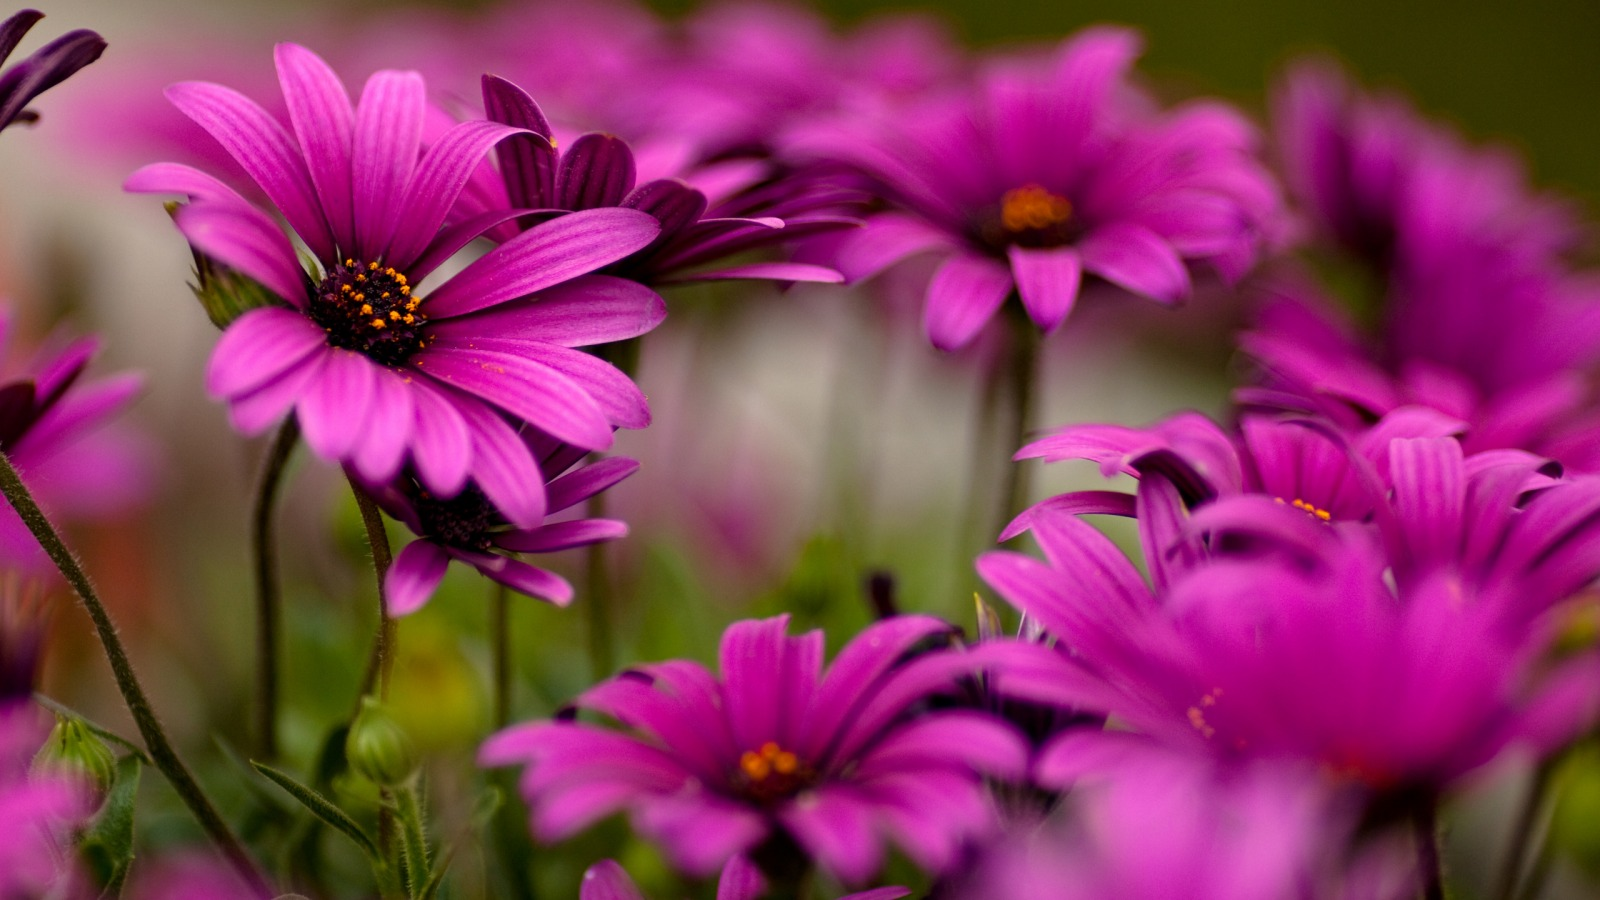 40 Beautiful Flower Wallpapers for your Desktop Mobile and